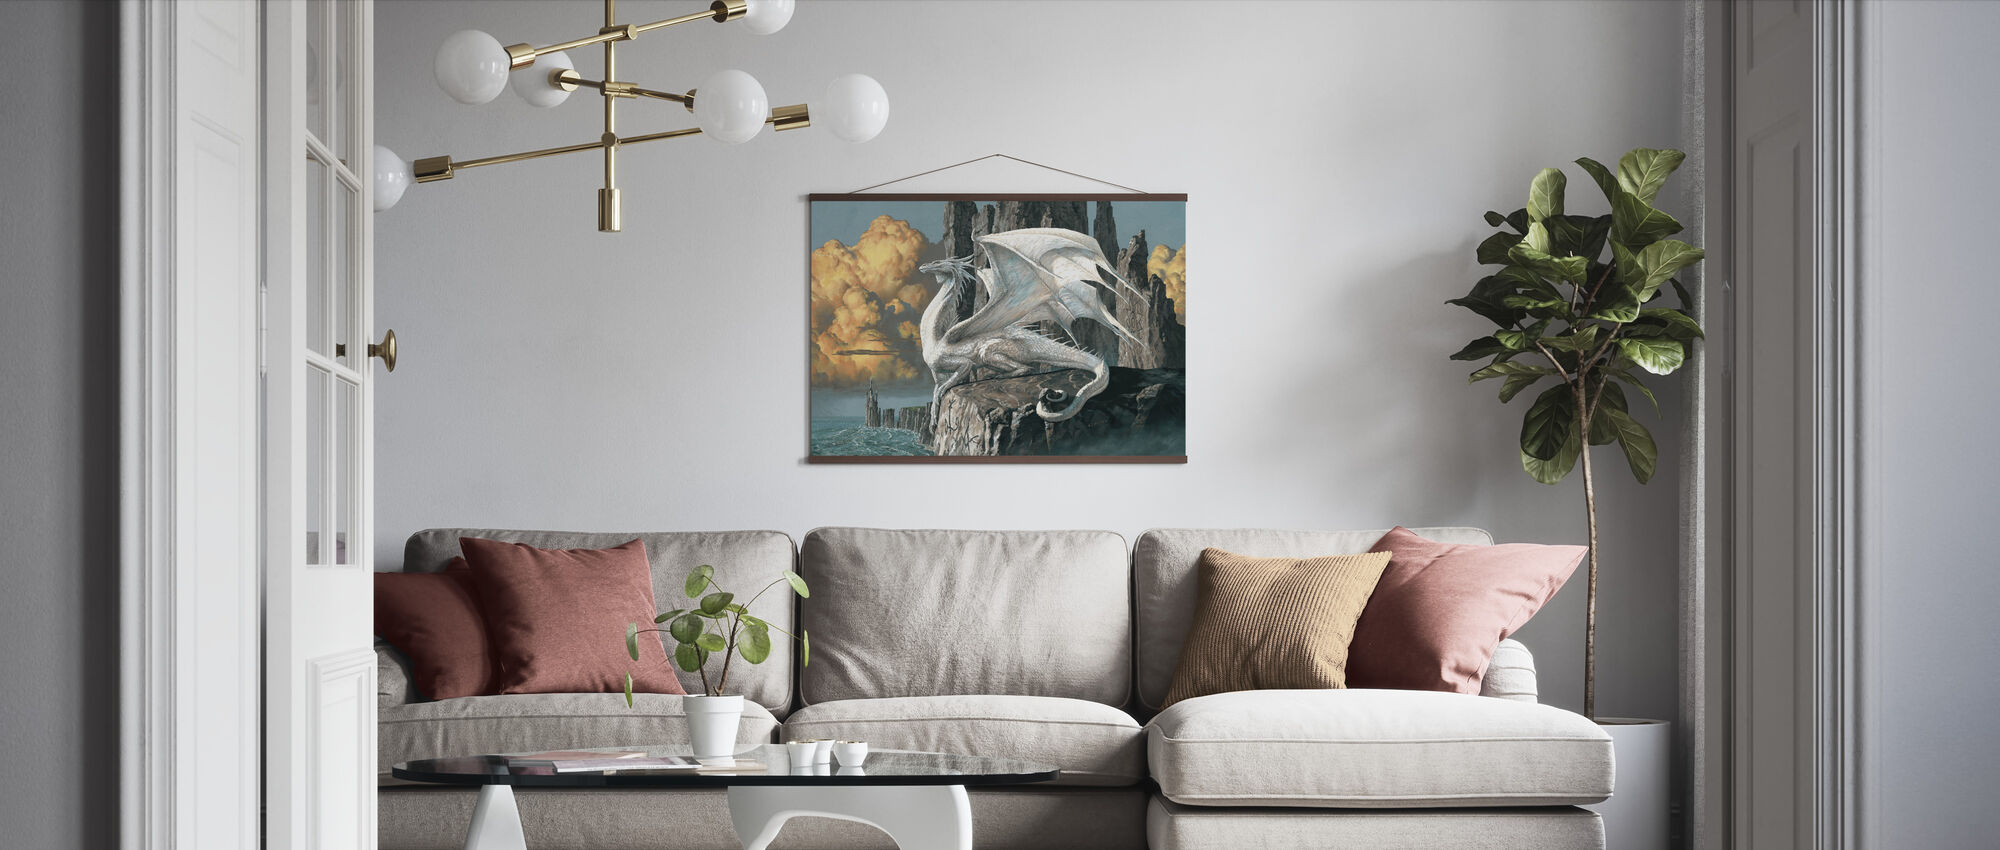 Hobsyllwin - Poster - Living Room